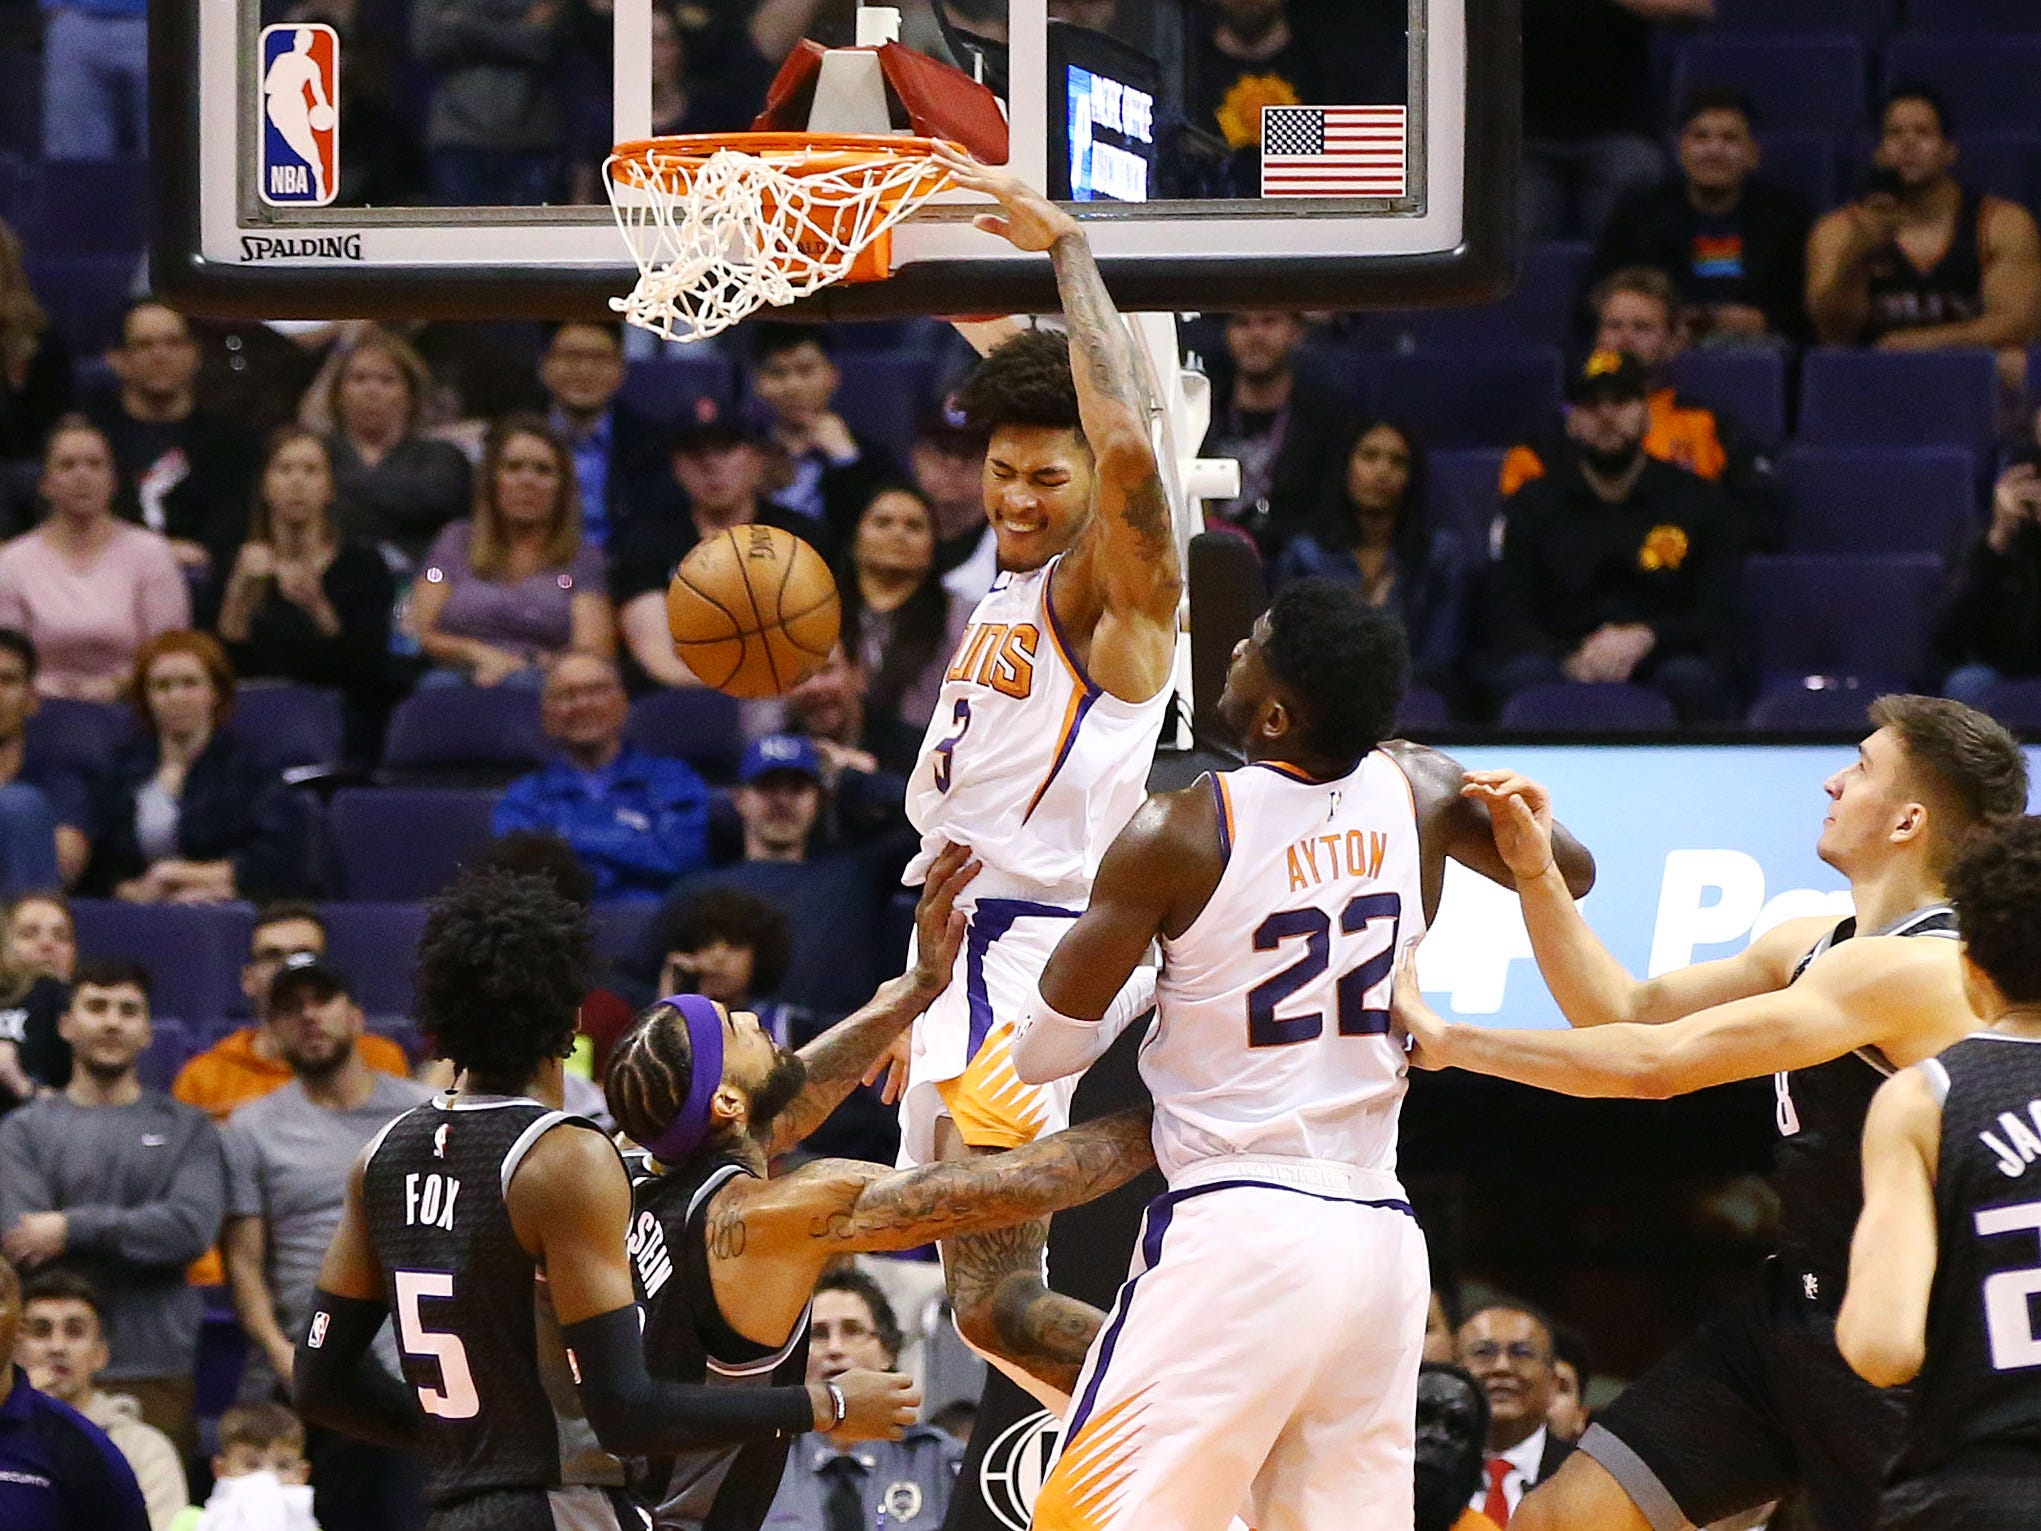 Phoenix Suns forward Kelly Oubre Jr. (3) slam-dunks the ball against the Sacramento Kings in the second half on Jan. 8 at Talking Stick Resort Arena.